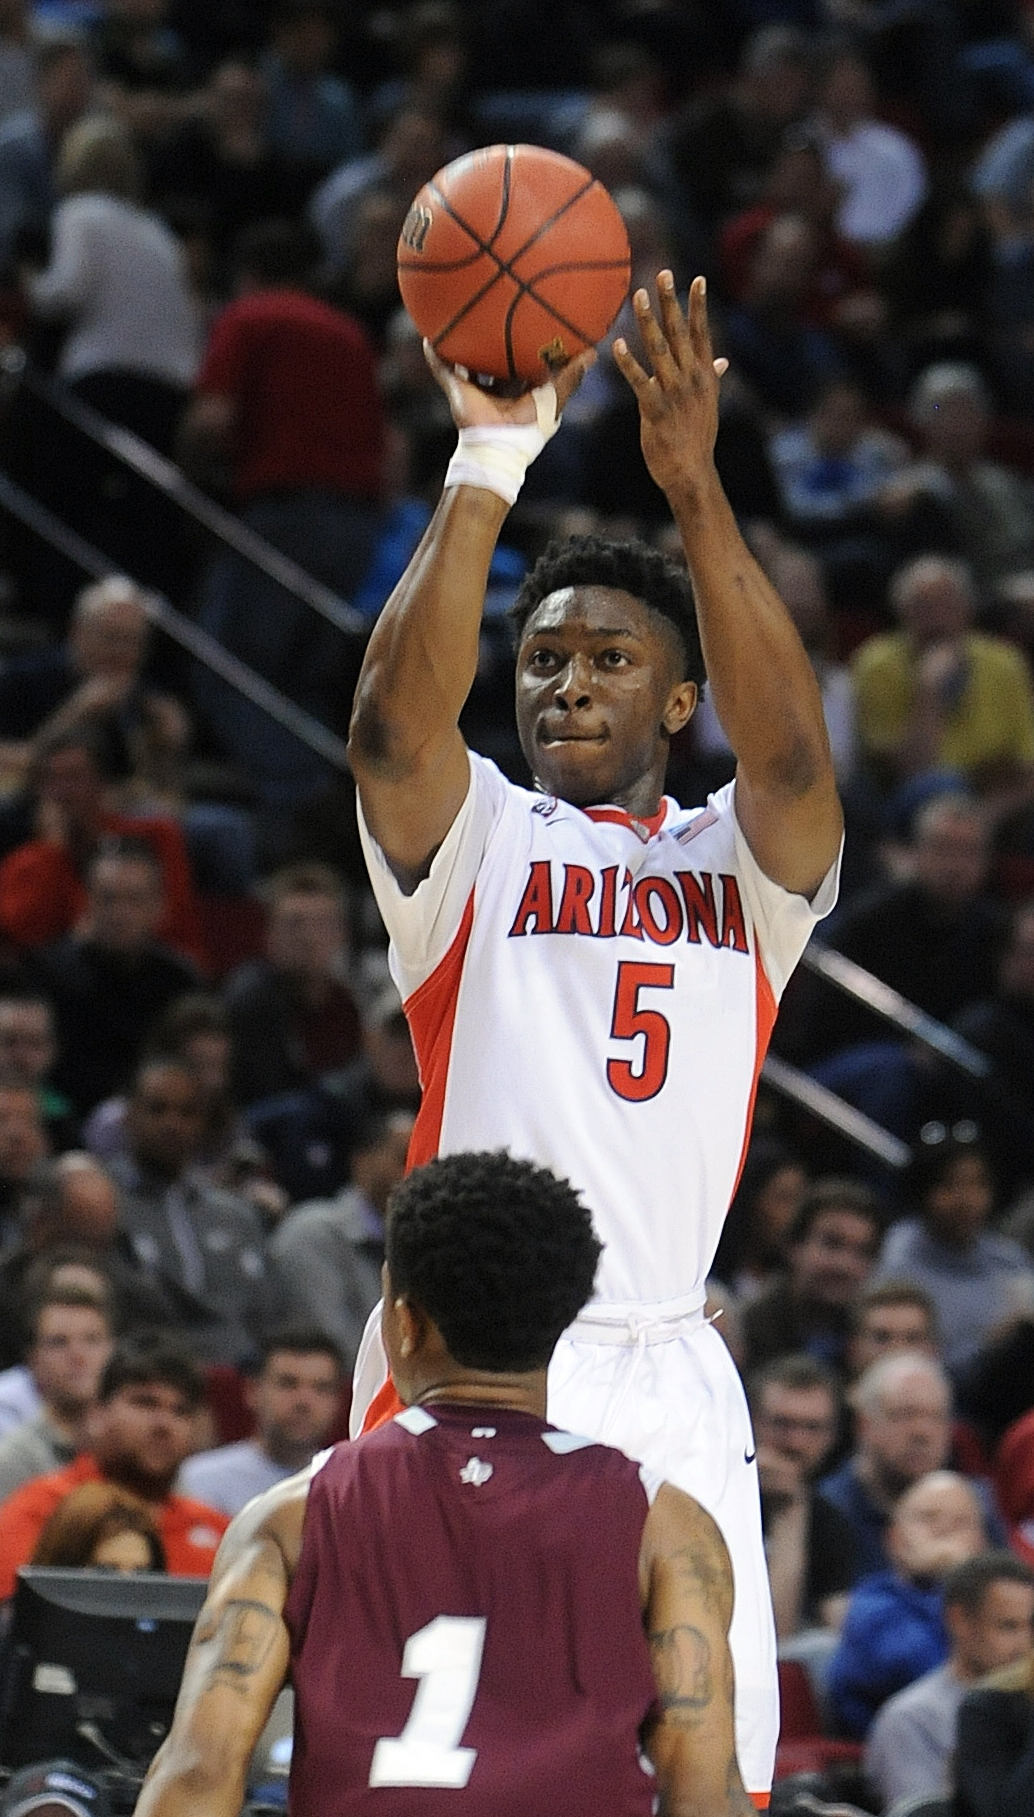 Arizona forward Stanley Johnson shoots over Texas Southern guard Deverell Biggs during the second half of an NCAA college basketball second round game in Portland, Ore., Thursday, March 19, 2015.  Johnson scored 22 points as Arizona won 93-72. (AP Photo/G